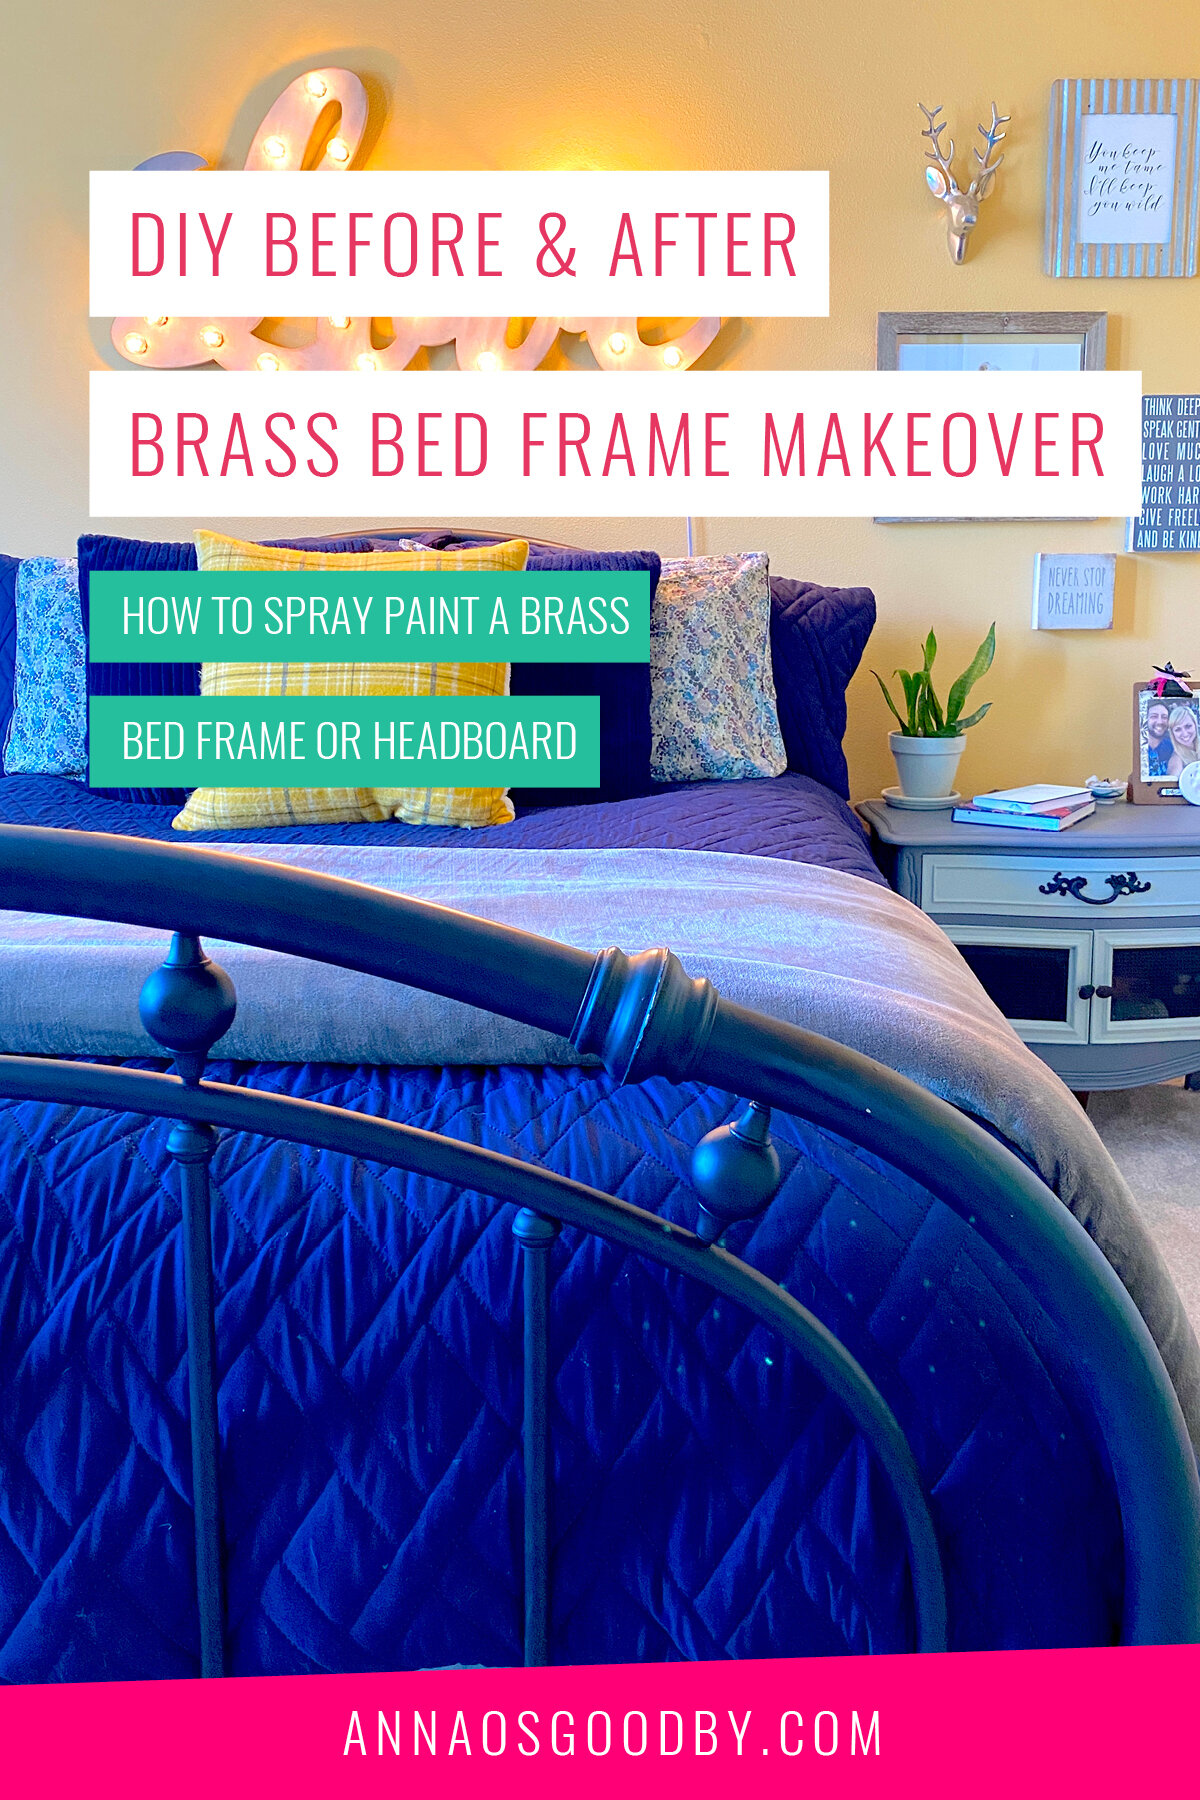 Diy Before And After Brass Bed Frame Makeover Anna Osgoodby Life Biz Seattle Lifestyle Blogger Goals Coach